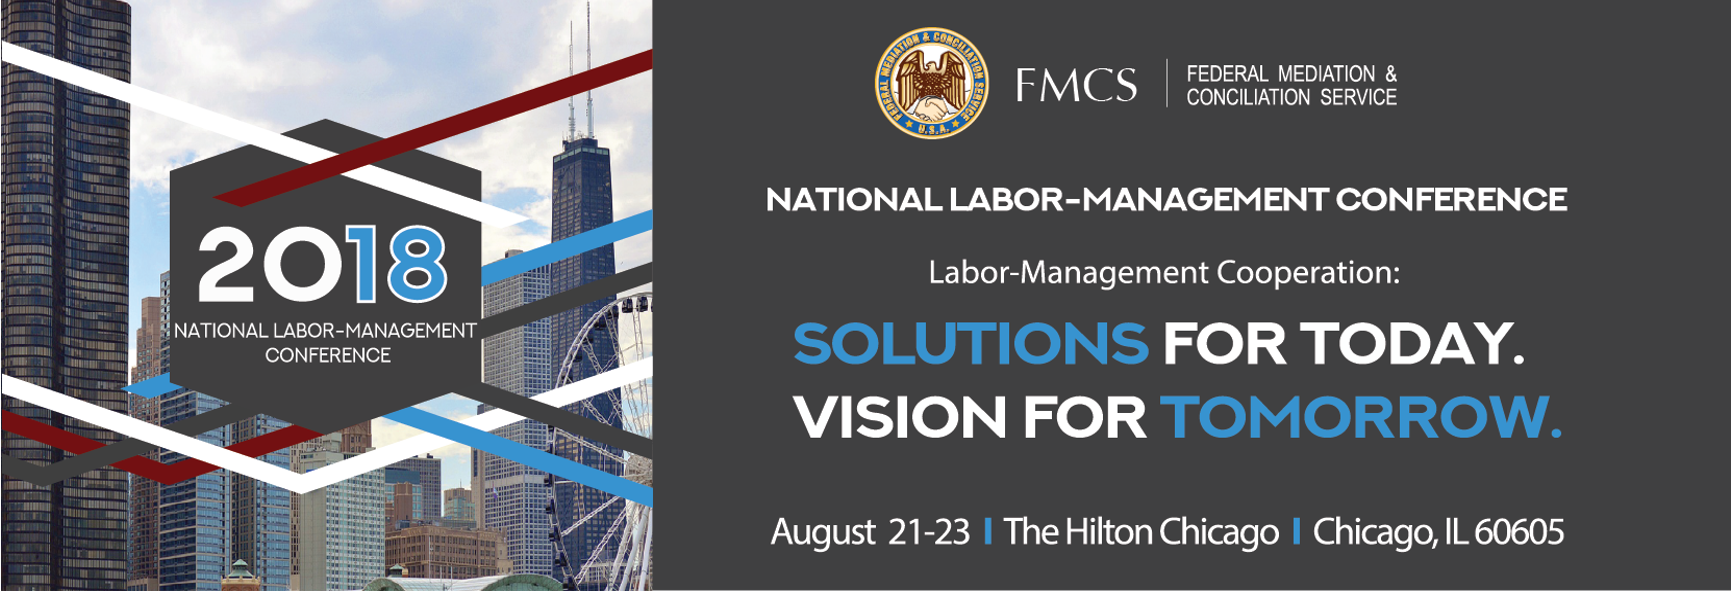 National Labor-Management Conference 2018